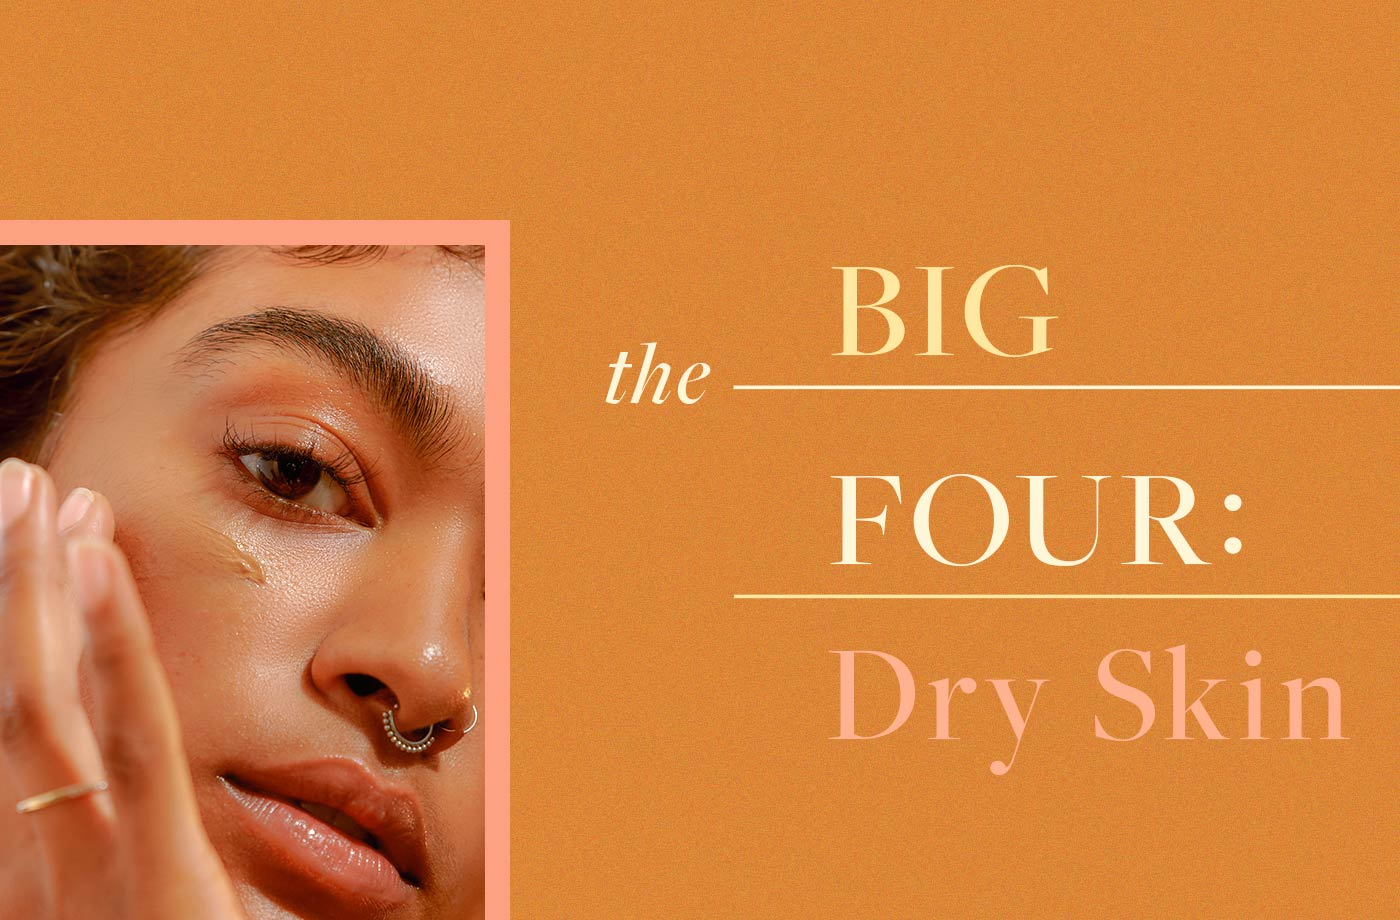 Derms say the 'big four' are all you need to deal with dry skin